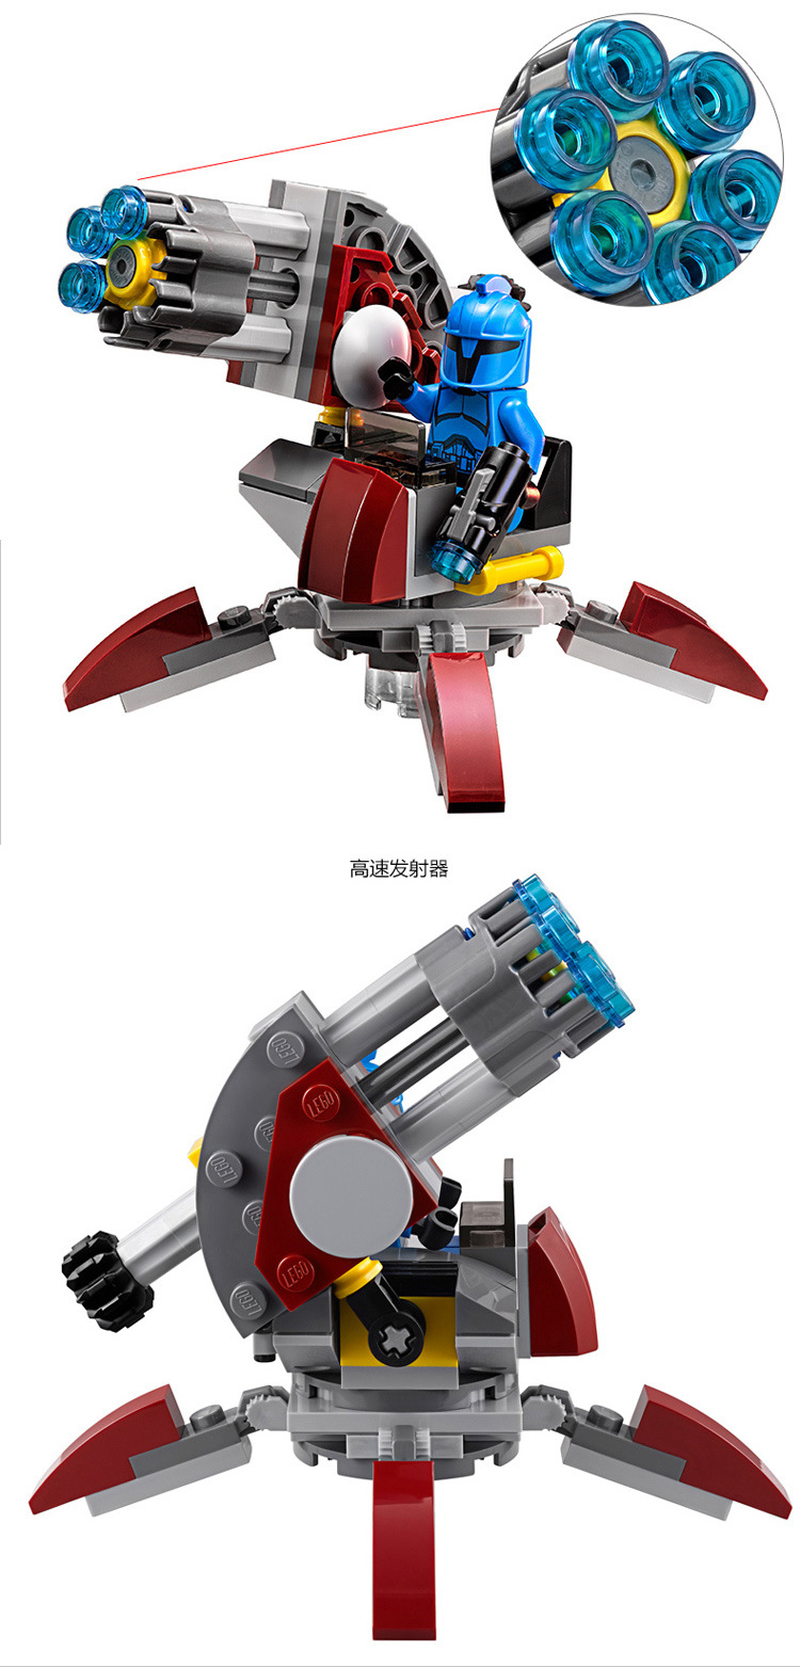 10367 Compatible With Lepining Star Wars The Avengers Senate Commando Trooper Building Blocks Sets Bricks By BaToys